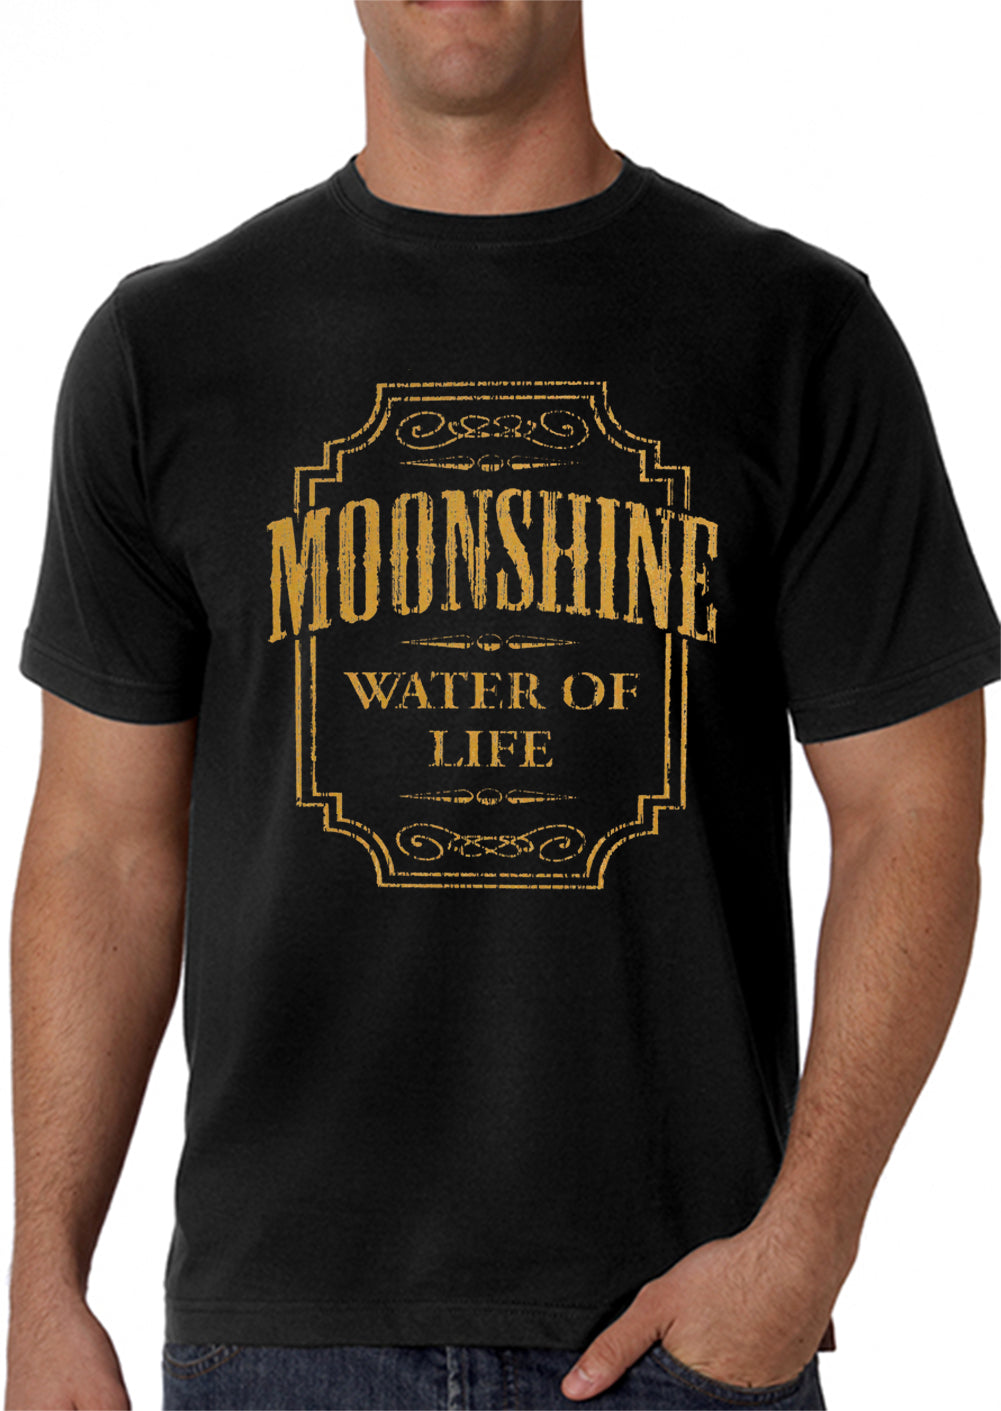 Moonshine - Water Of Life Men's T-Shirt